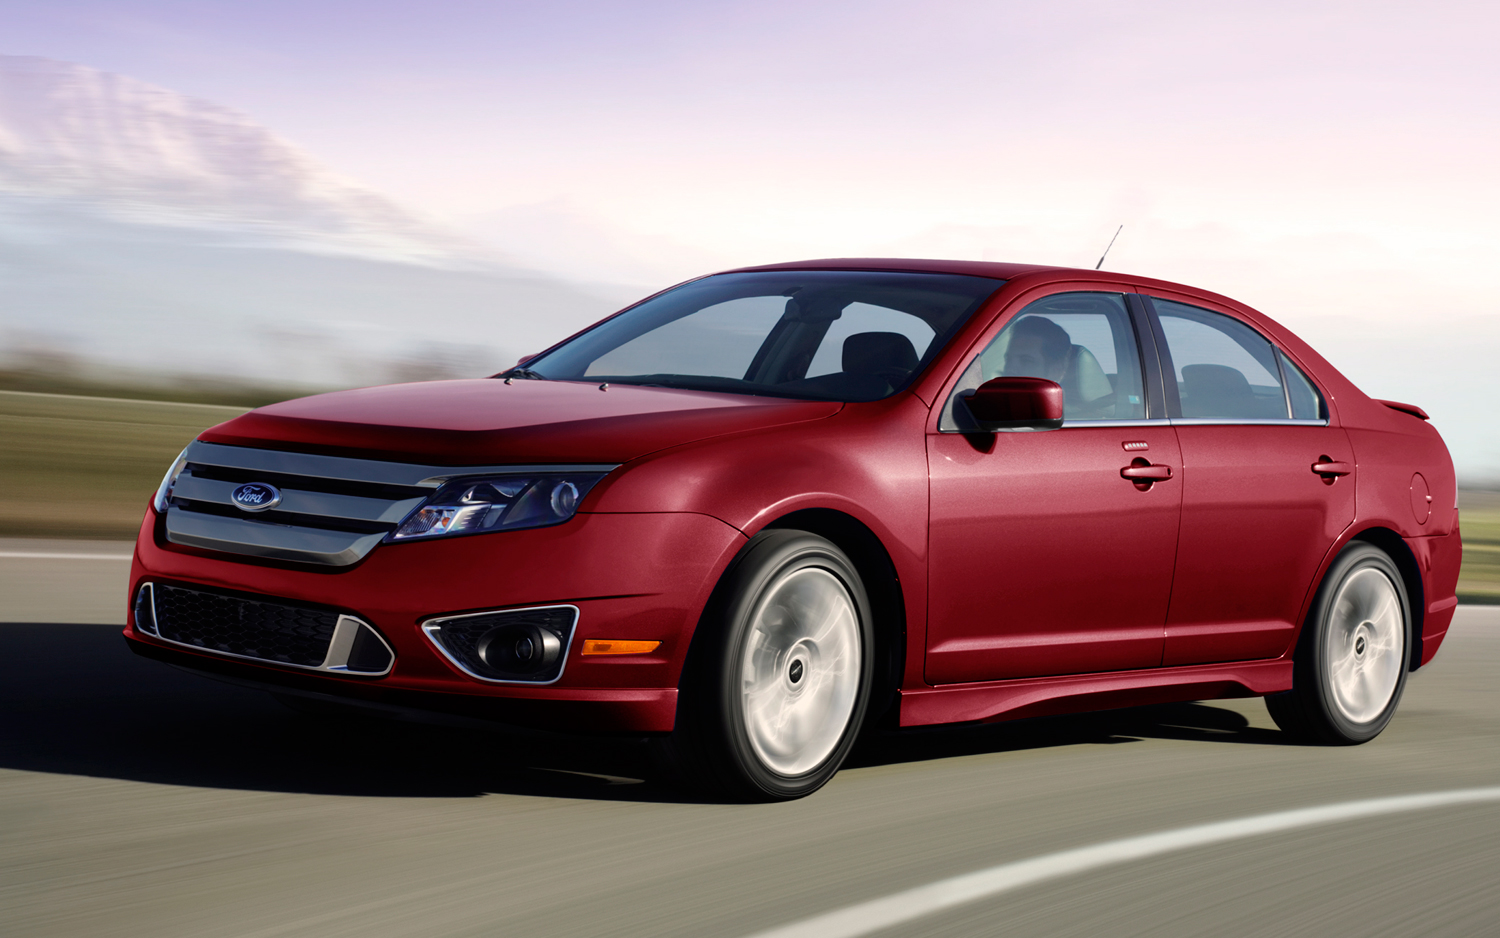 2012 Ford Fusion #16 Ford Fusion #16